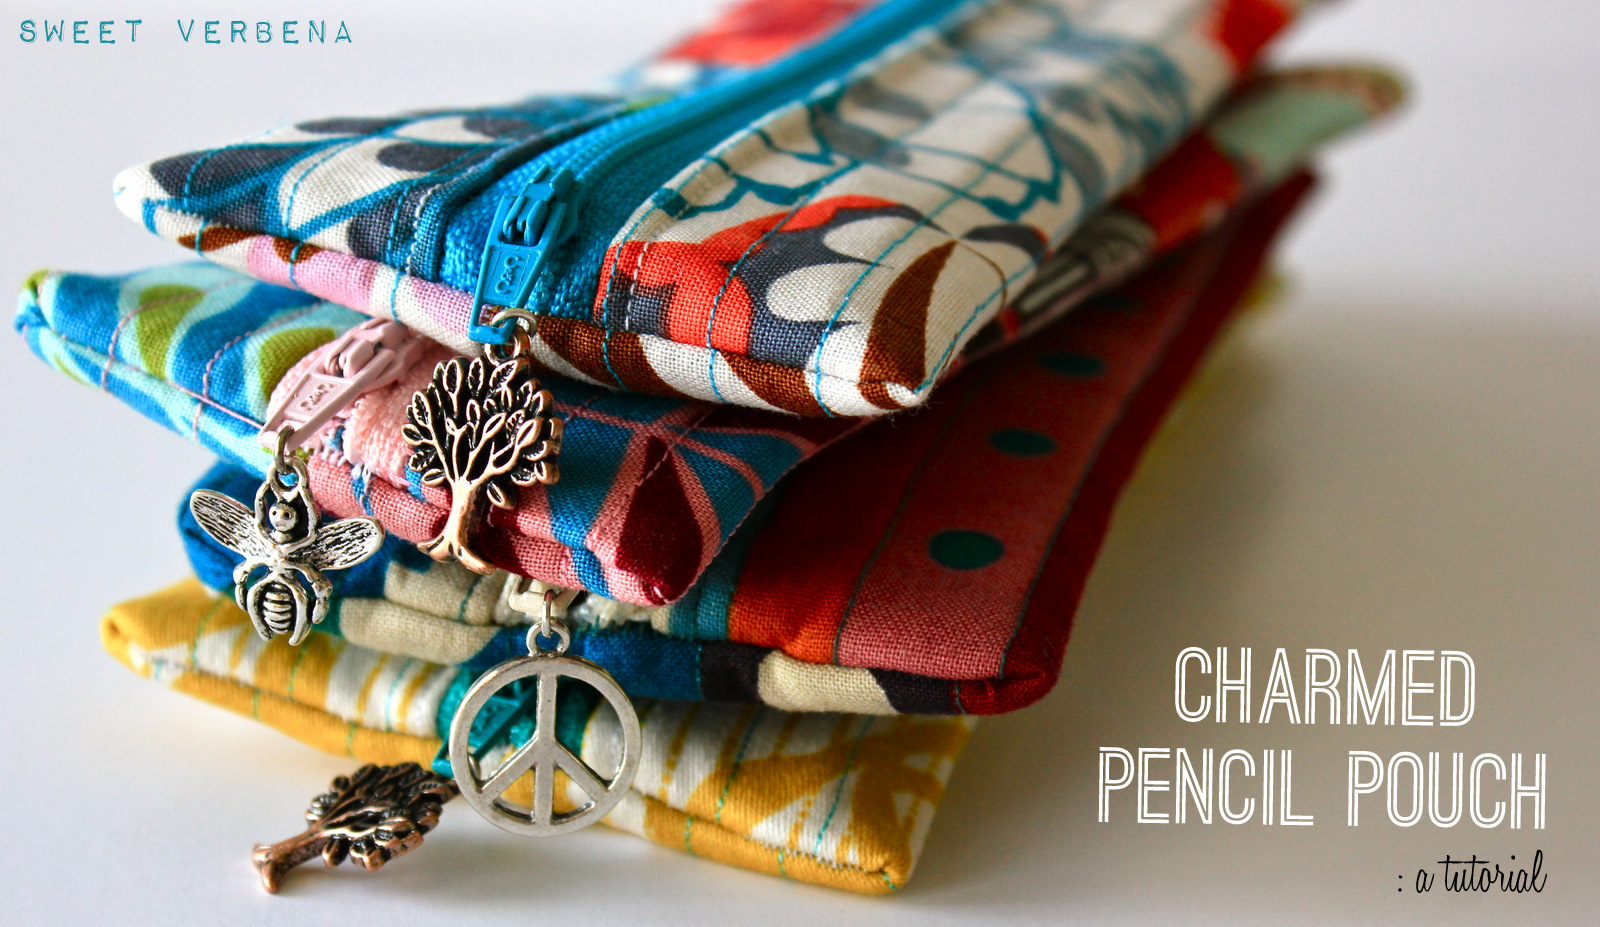 sweet verbena charmed pencil pouch tutorial and an shop charmed pencil pouch tutorial and an shop